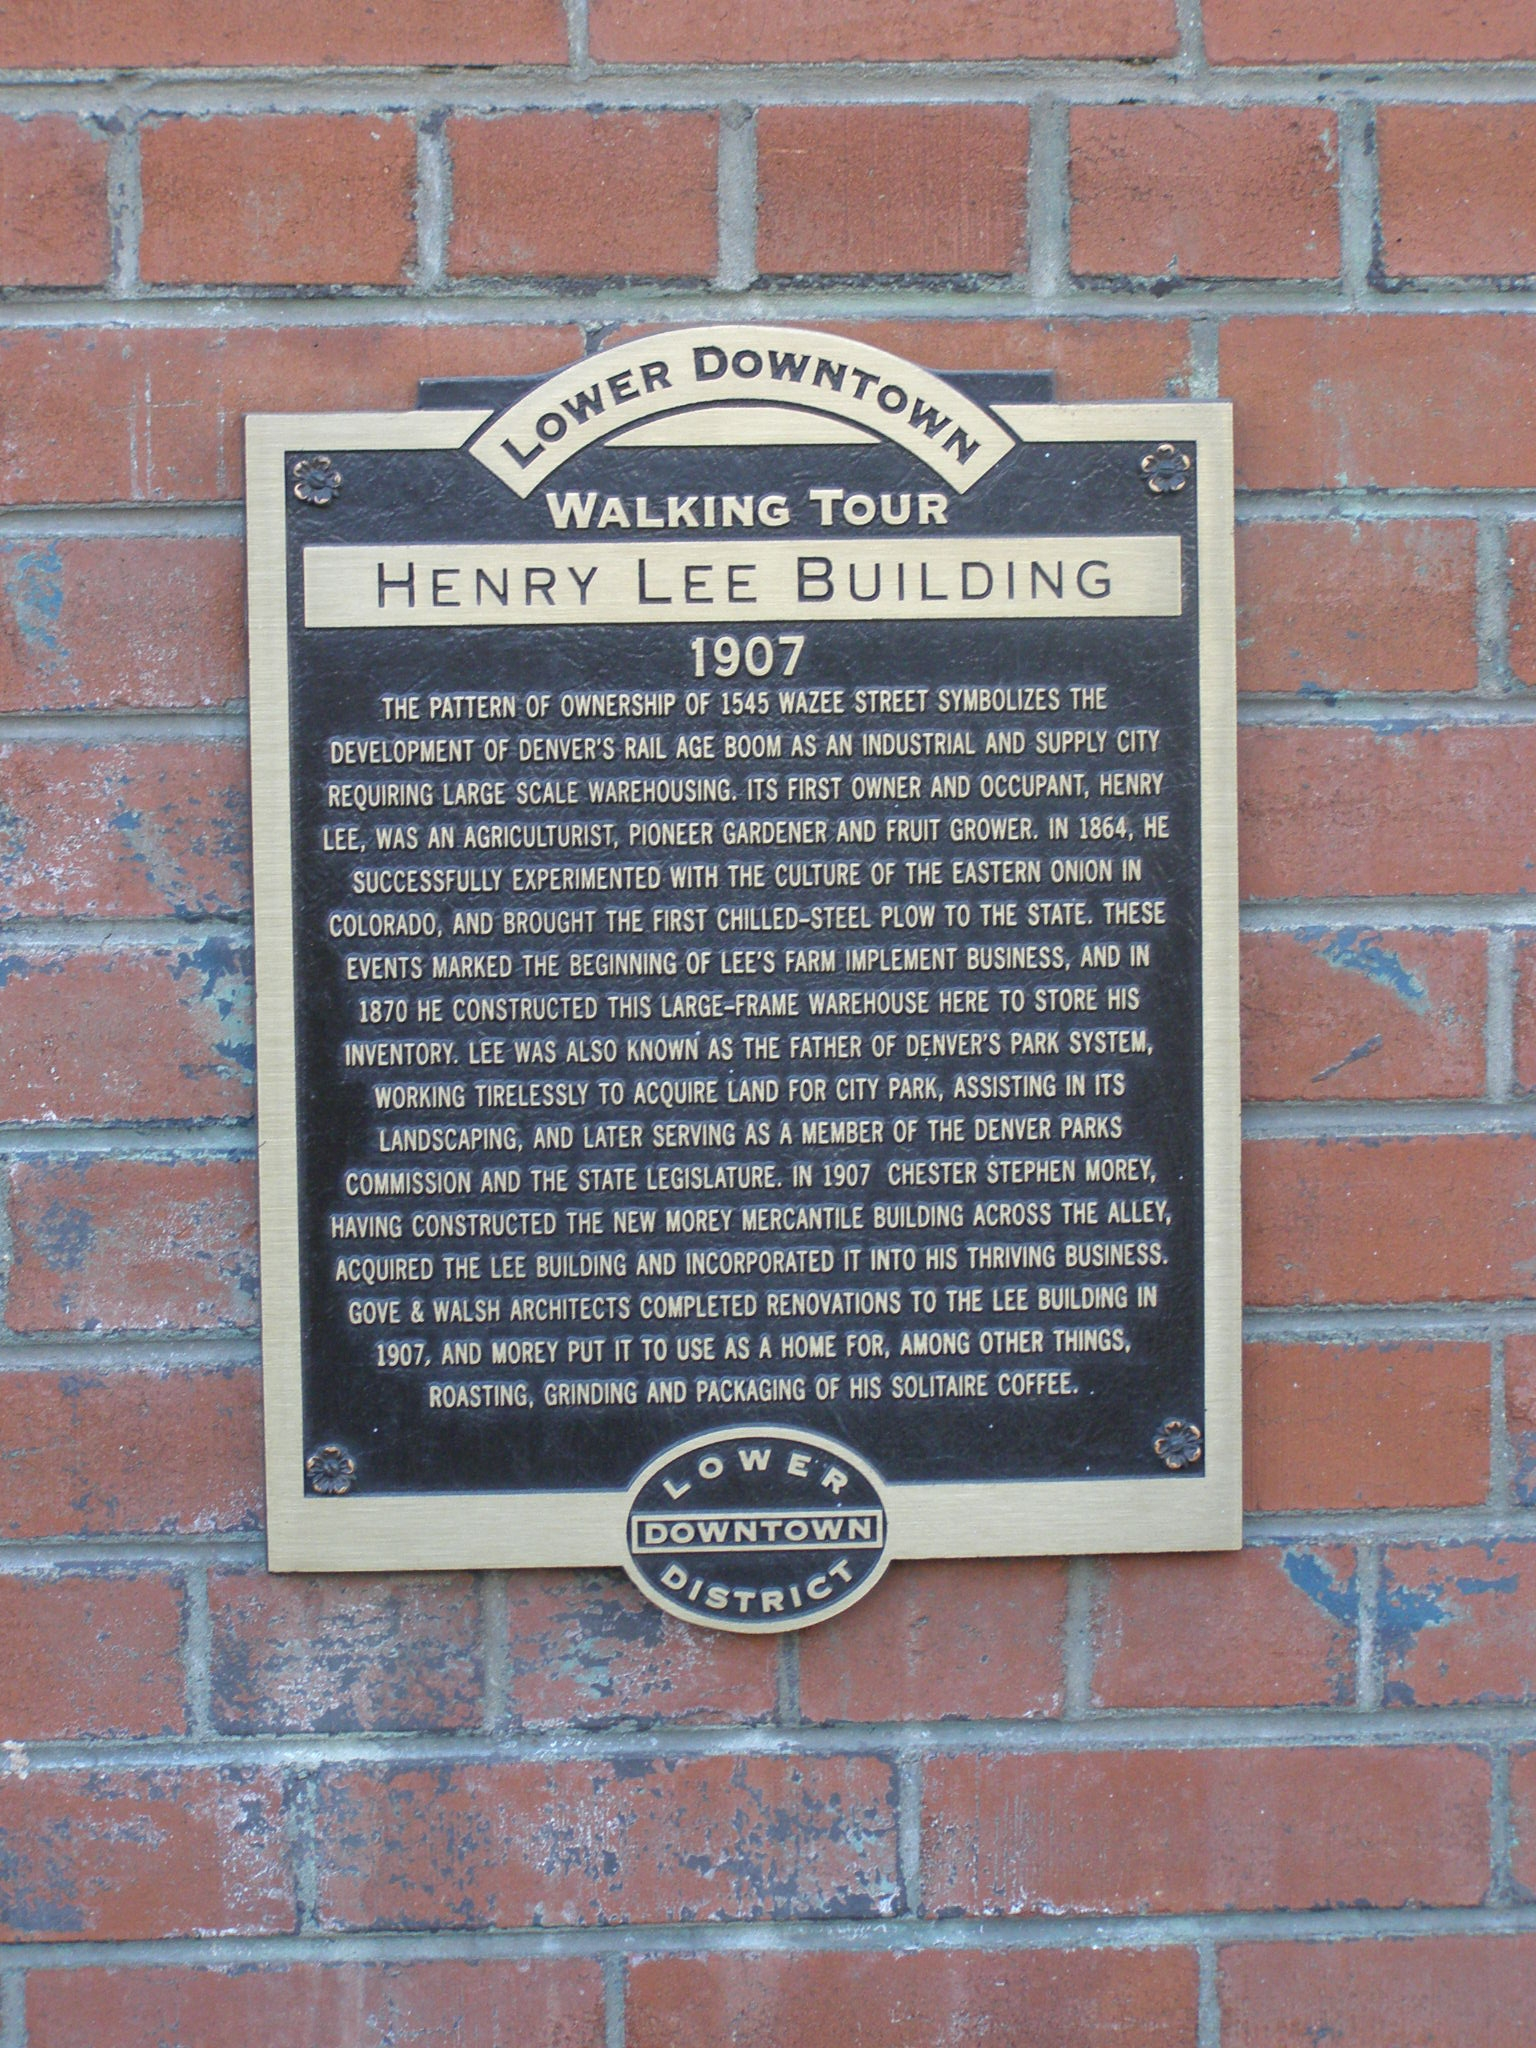 Lower Downtown Walking Tour - Henry Lee Building Marker